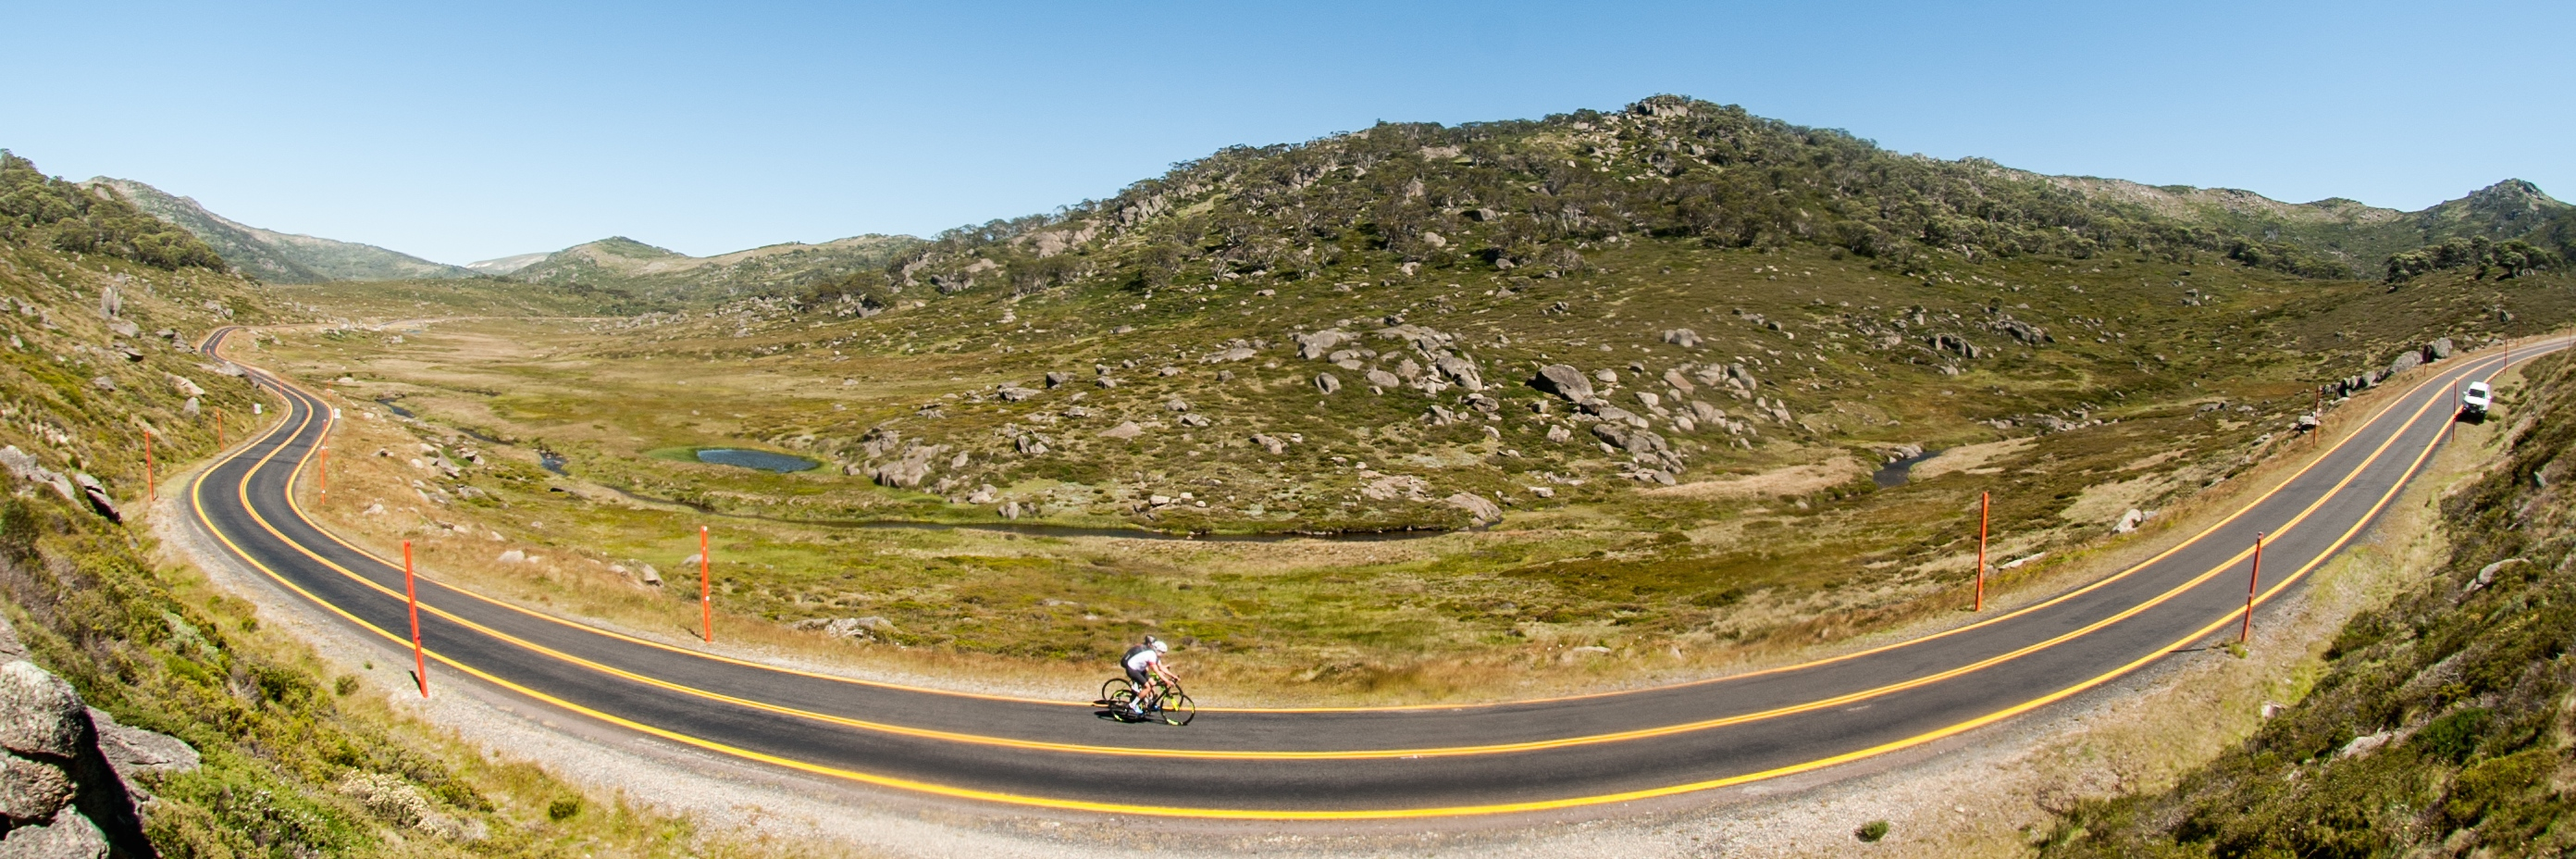 Snowy Mountains, NSW: Summer in the Snowies - Cyclist Australia/NZ